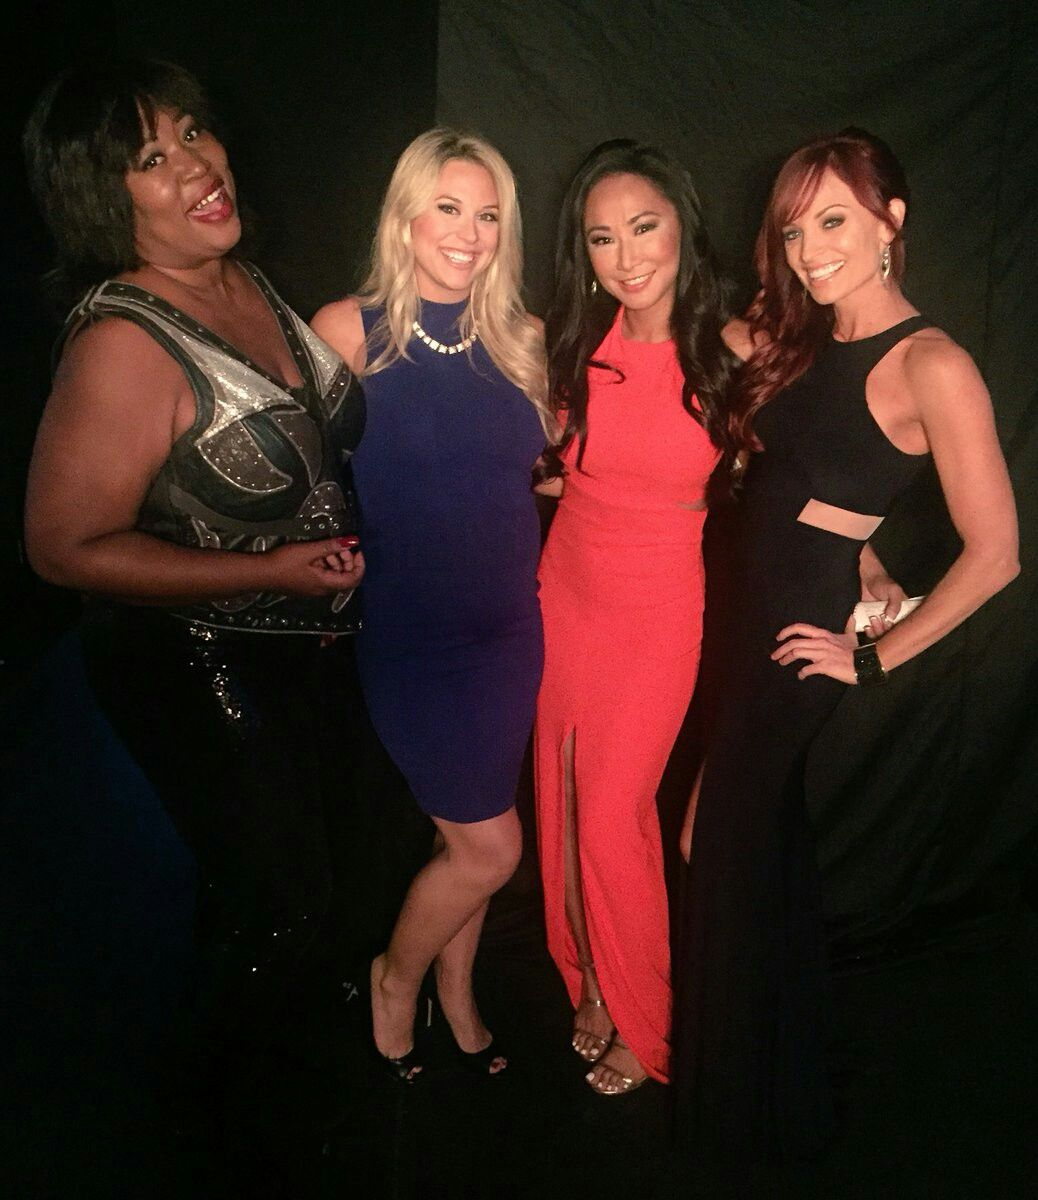 Kia Steven Taryn Terrell Gail Kim Christy Hemme Fashion Women Formal Dresses